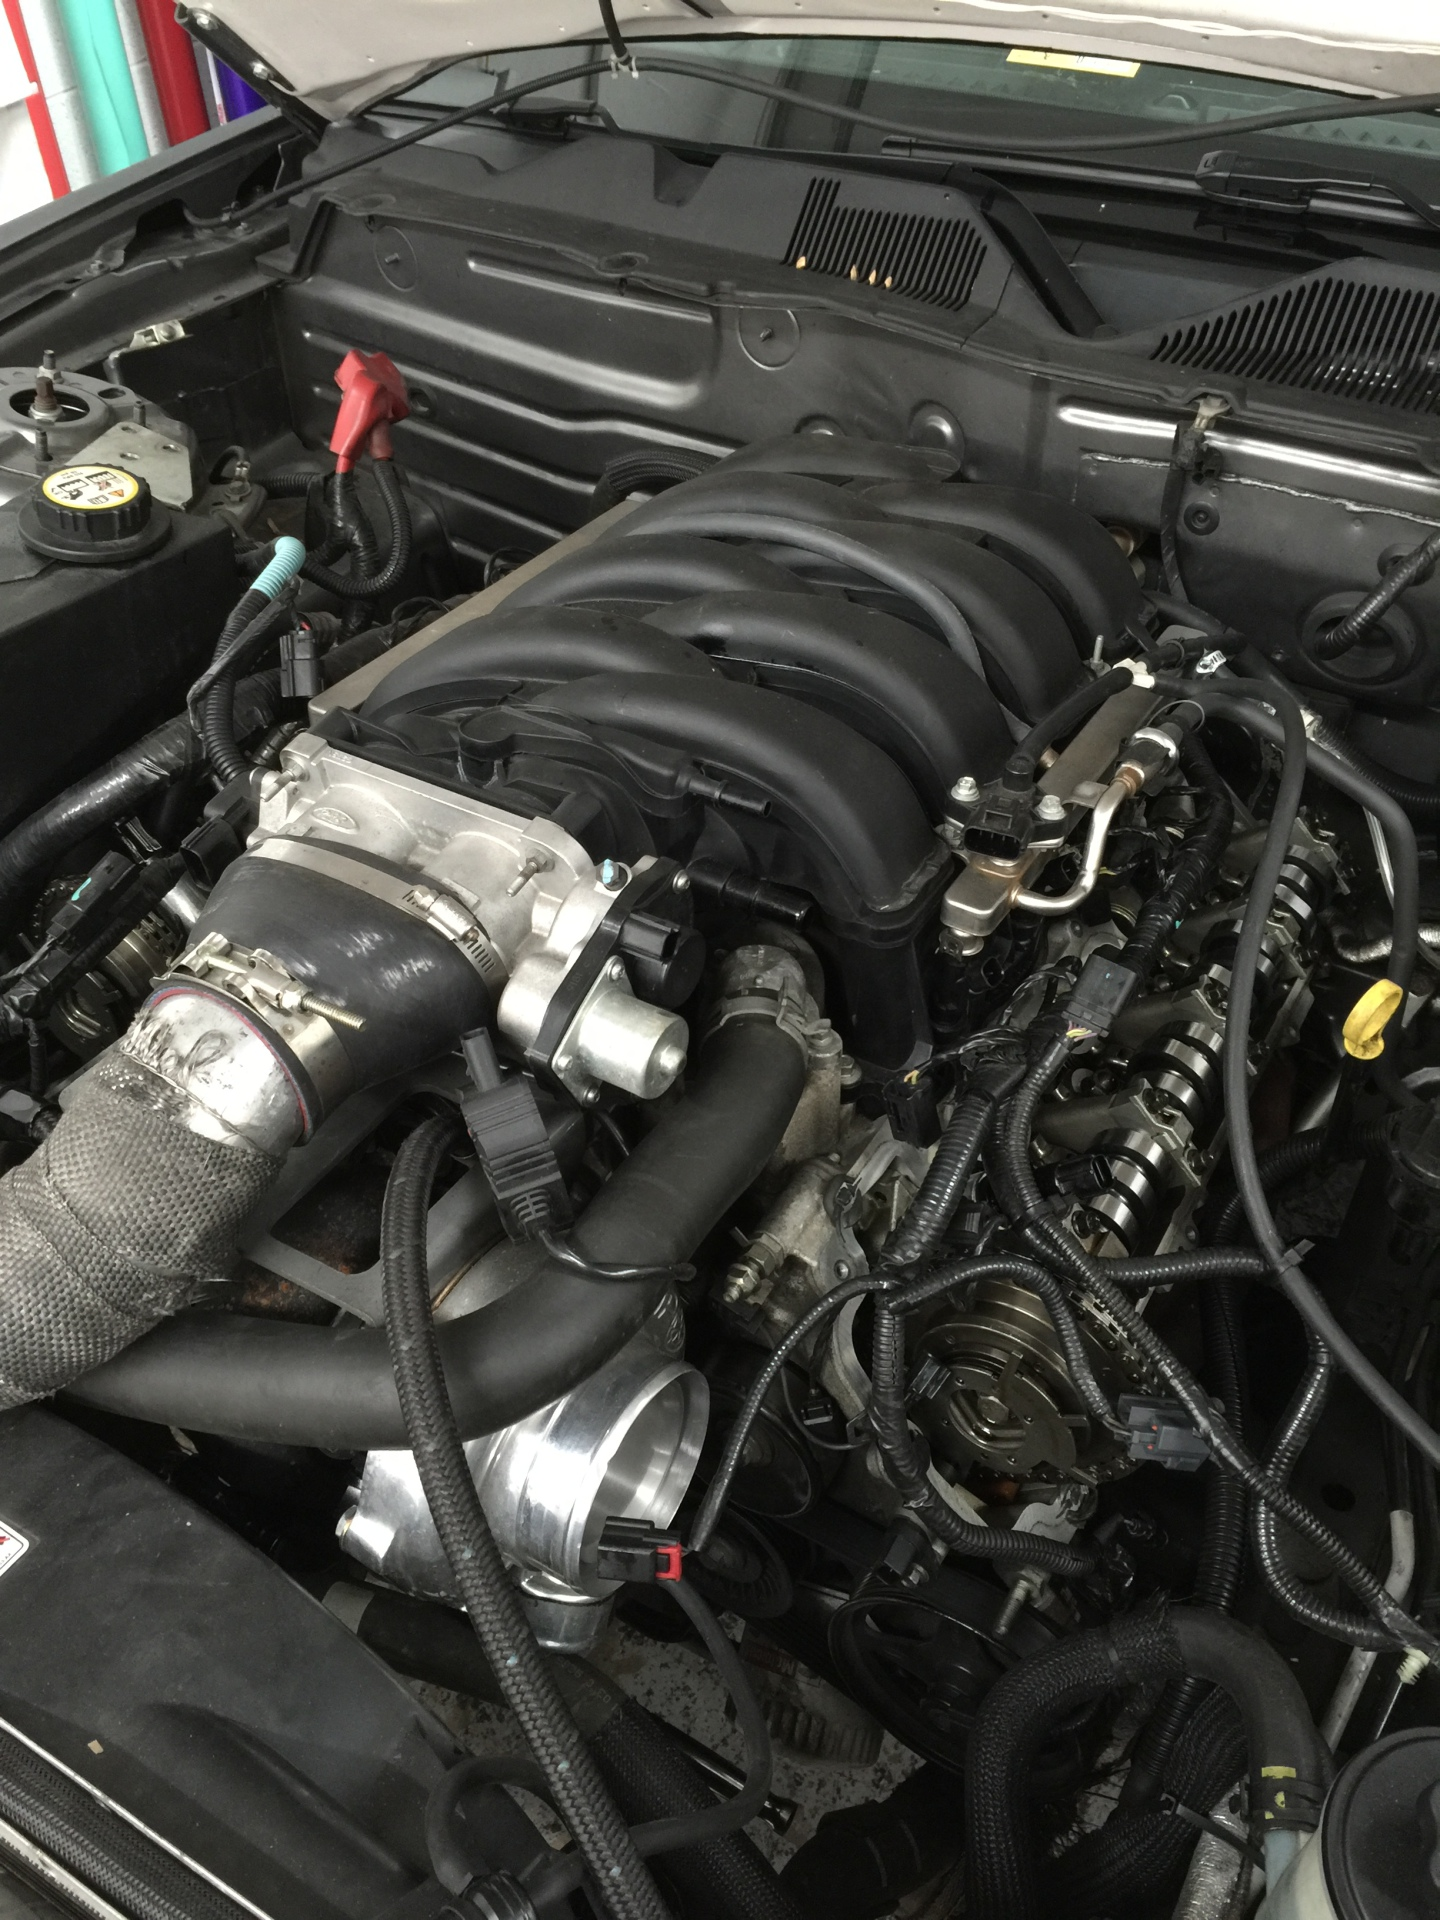 Hot Rod cam install on Comp Oil-less turbo kit 4.6 mustang.